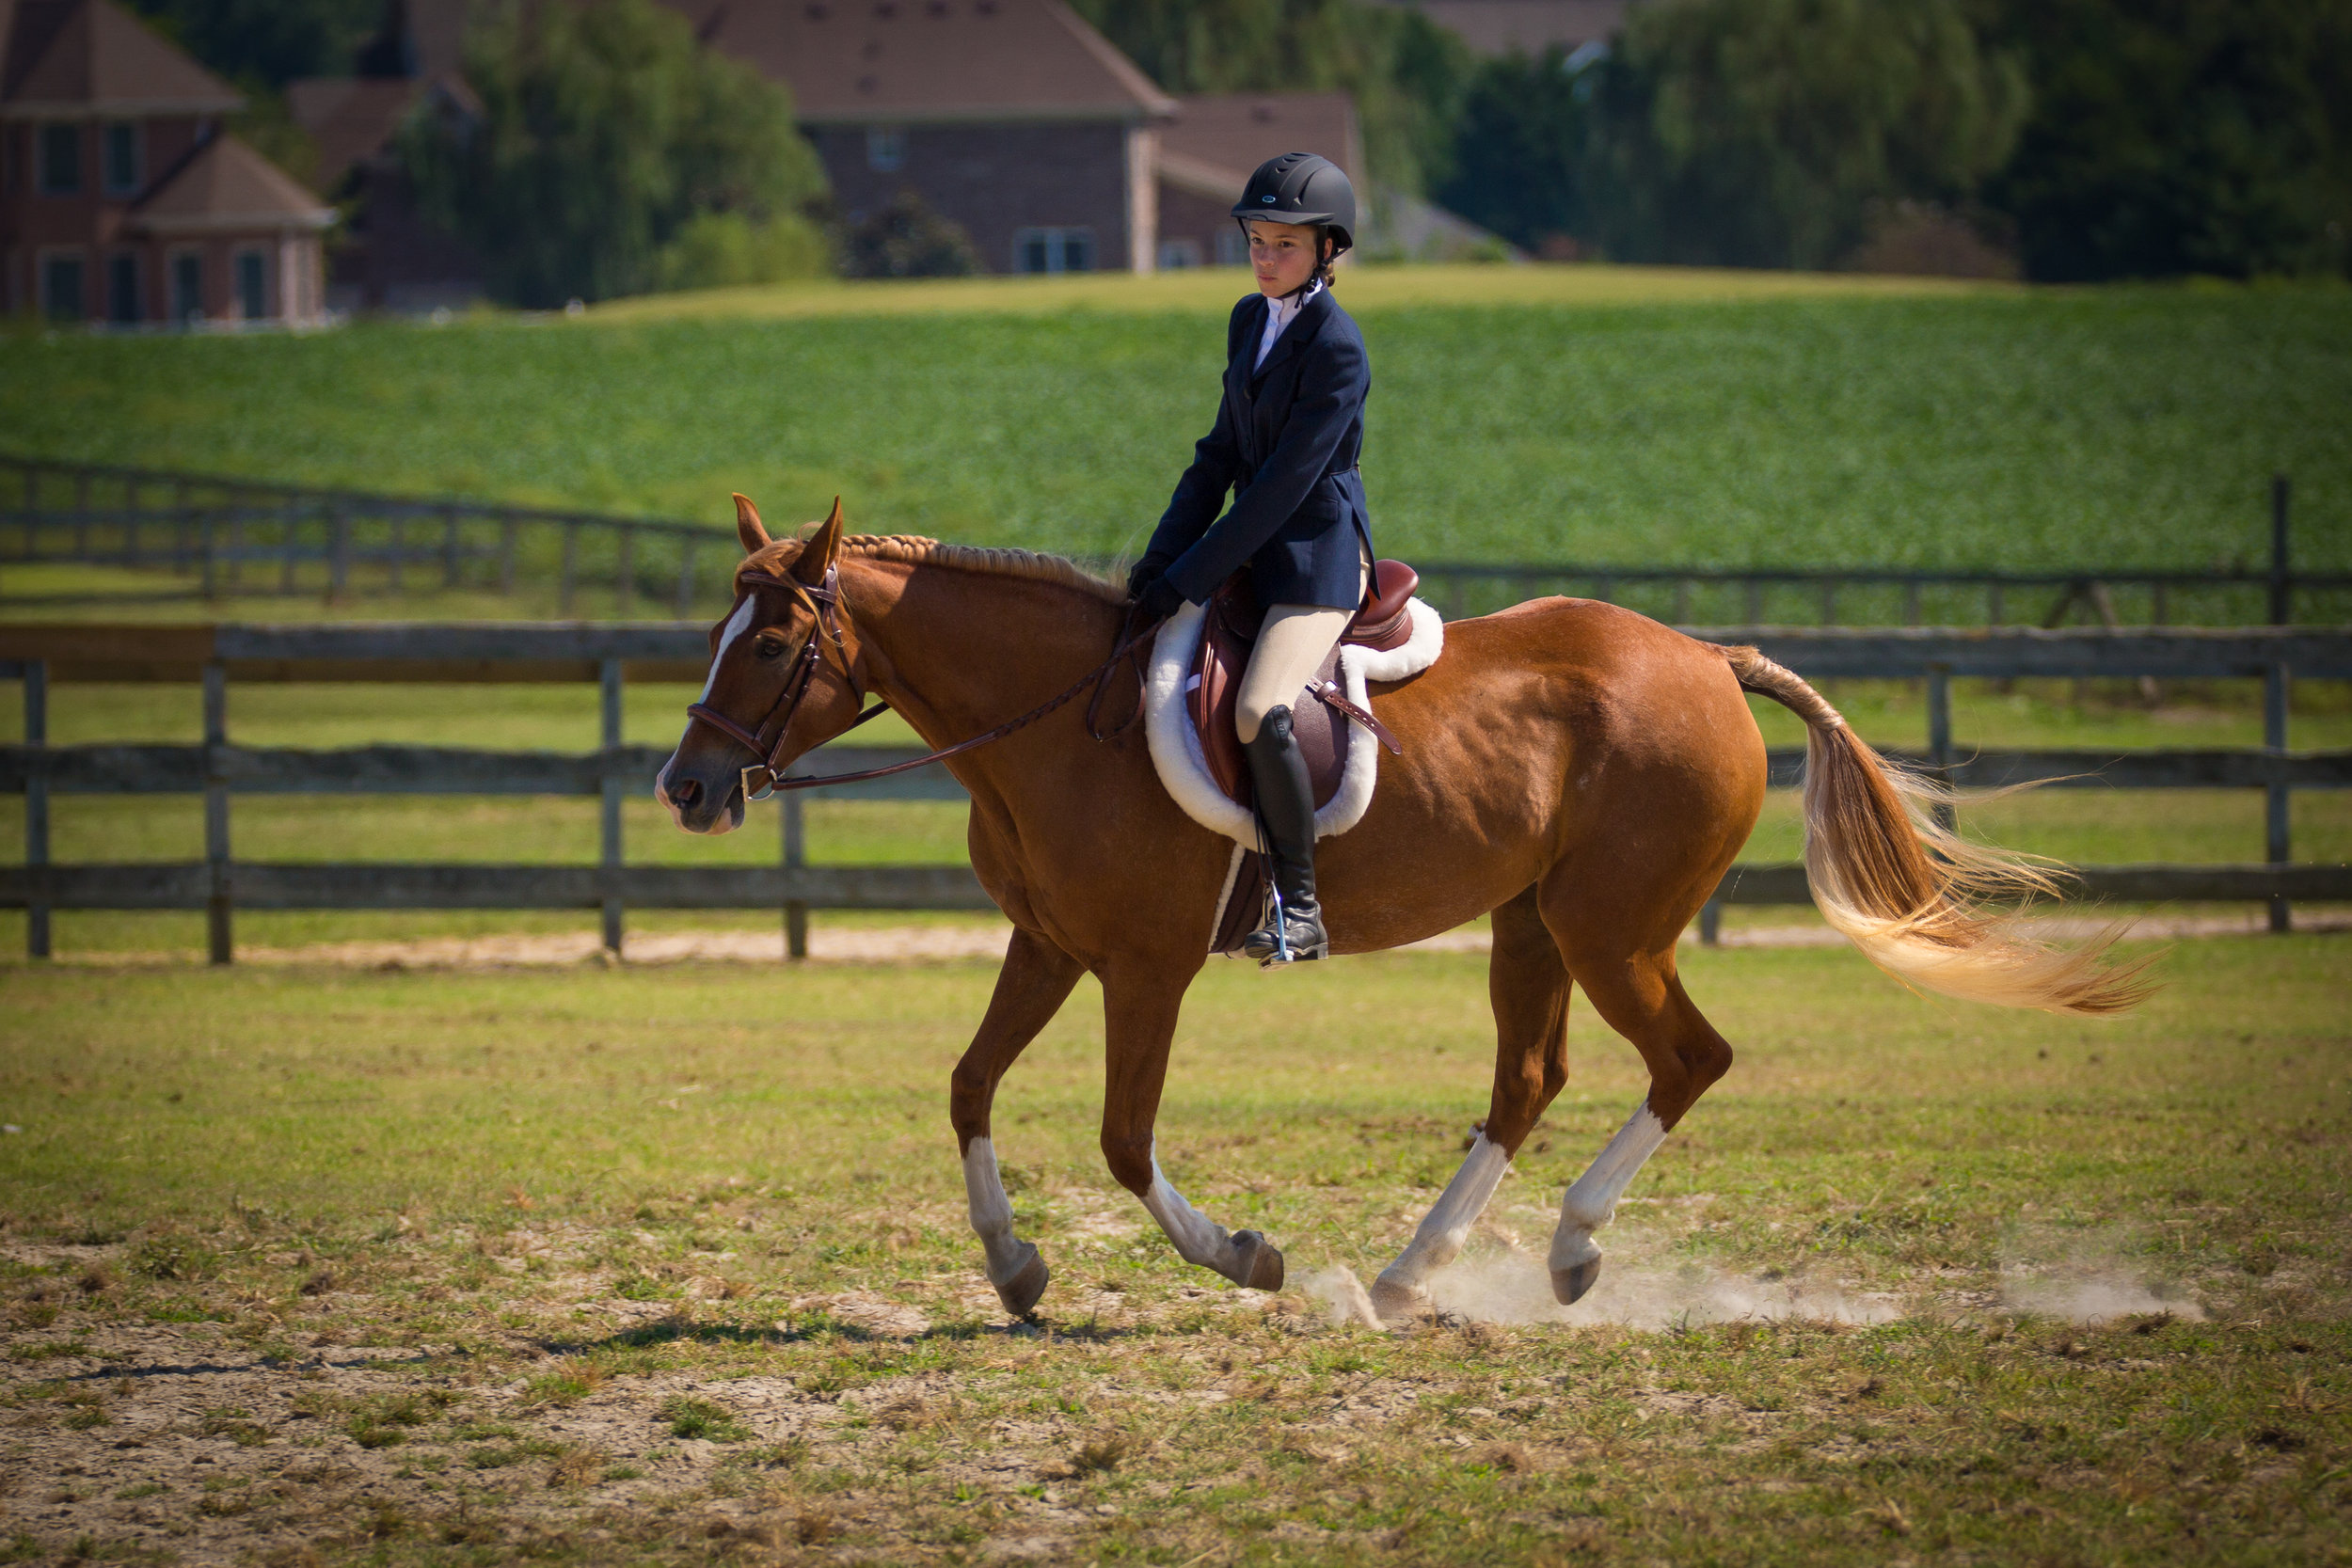 The goal is a relaxed rider and a responsive horse.